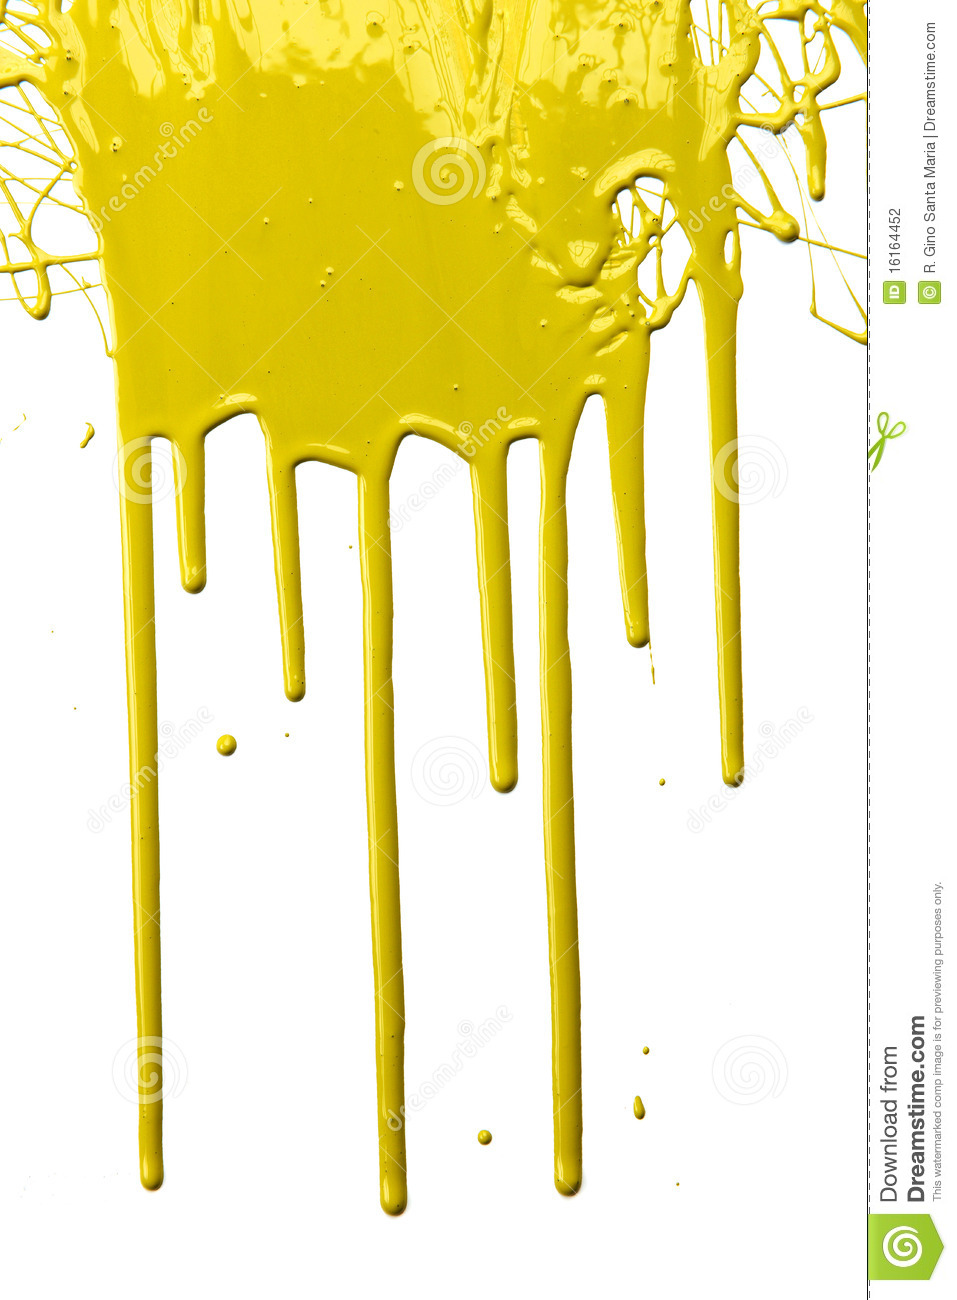 Yellow Paint Dripping stock photo. Image of droplet, drops ...